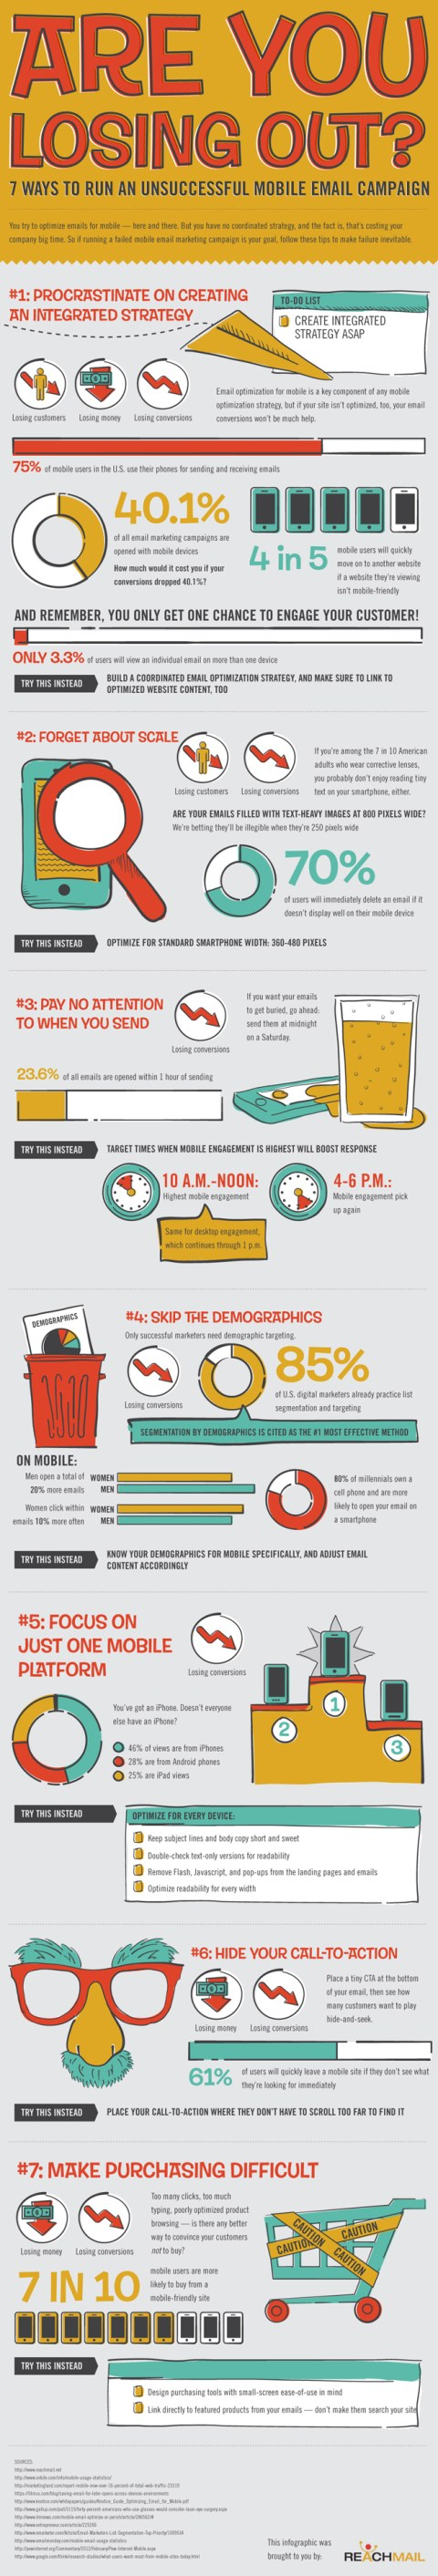 ReachMail_Infographic